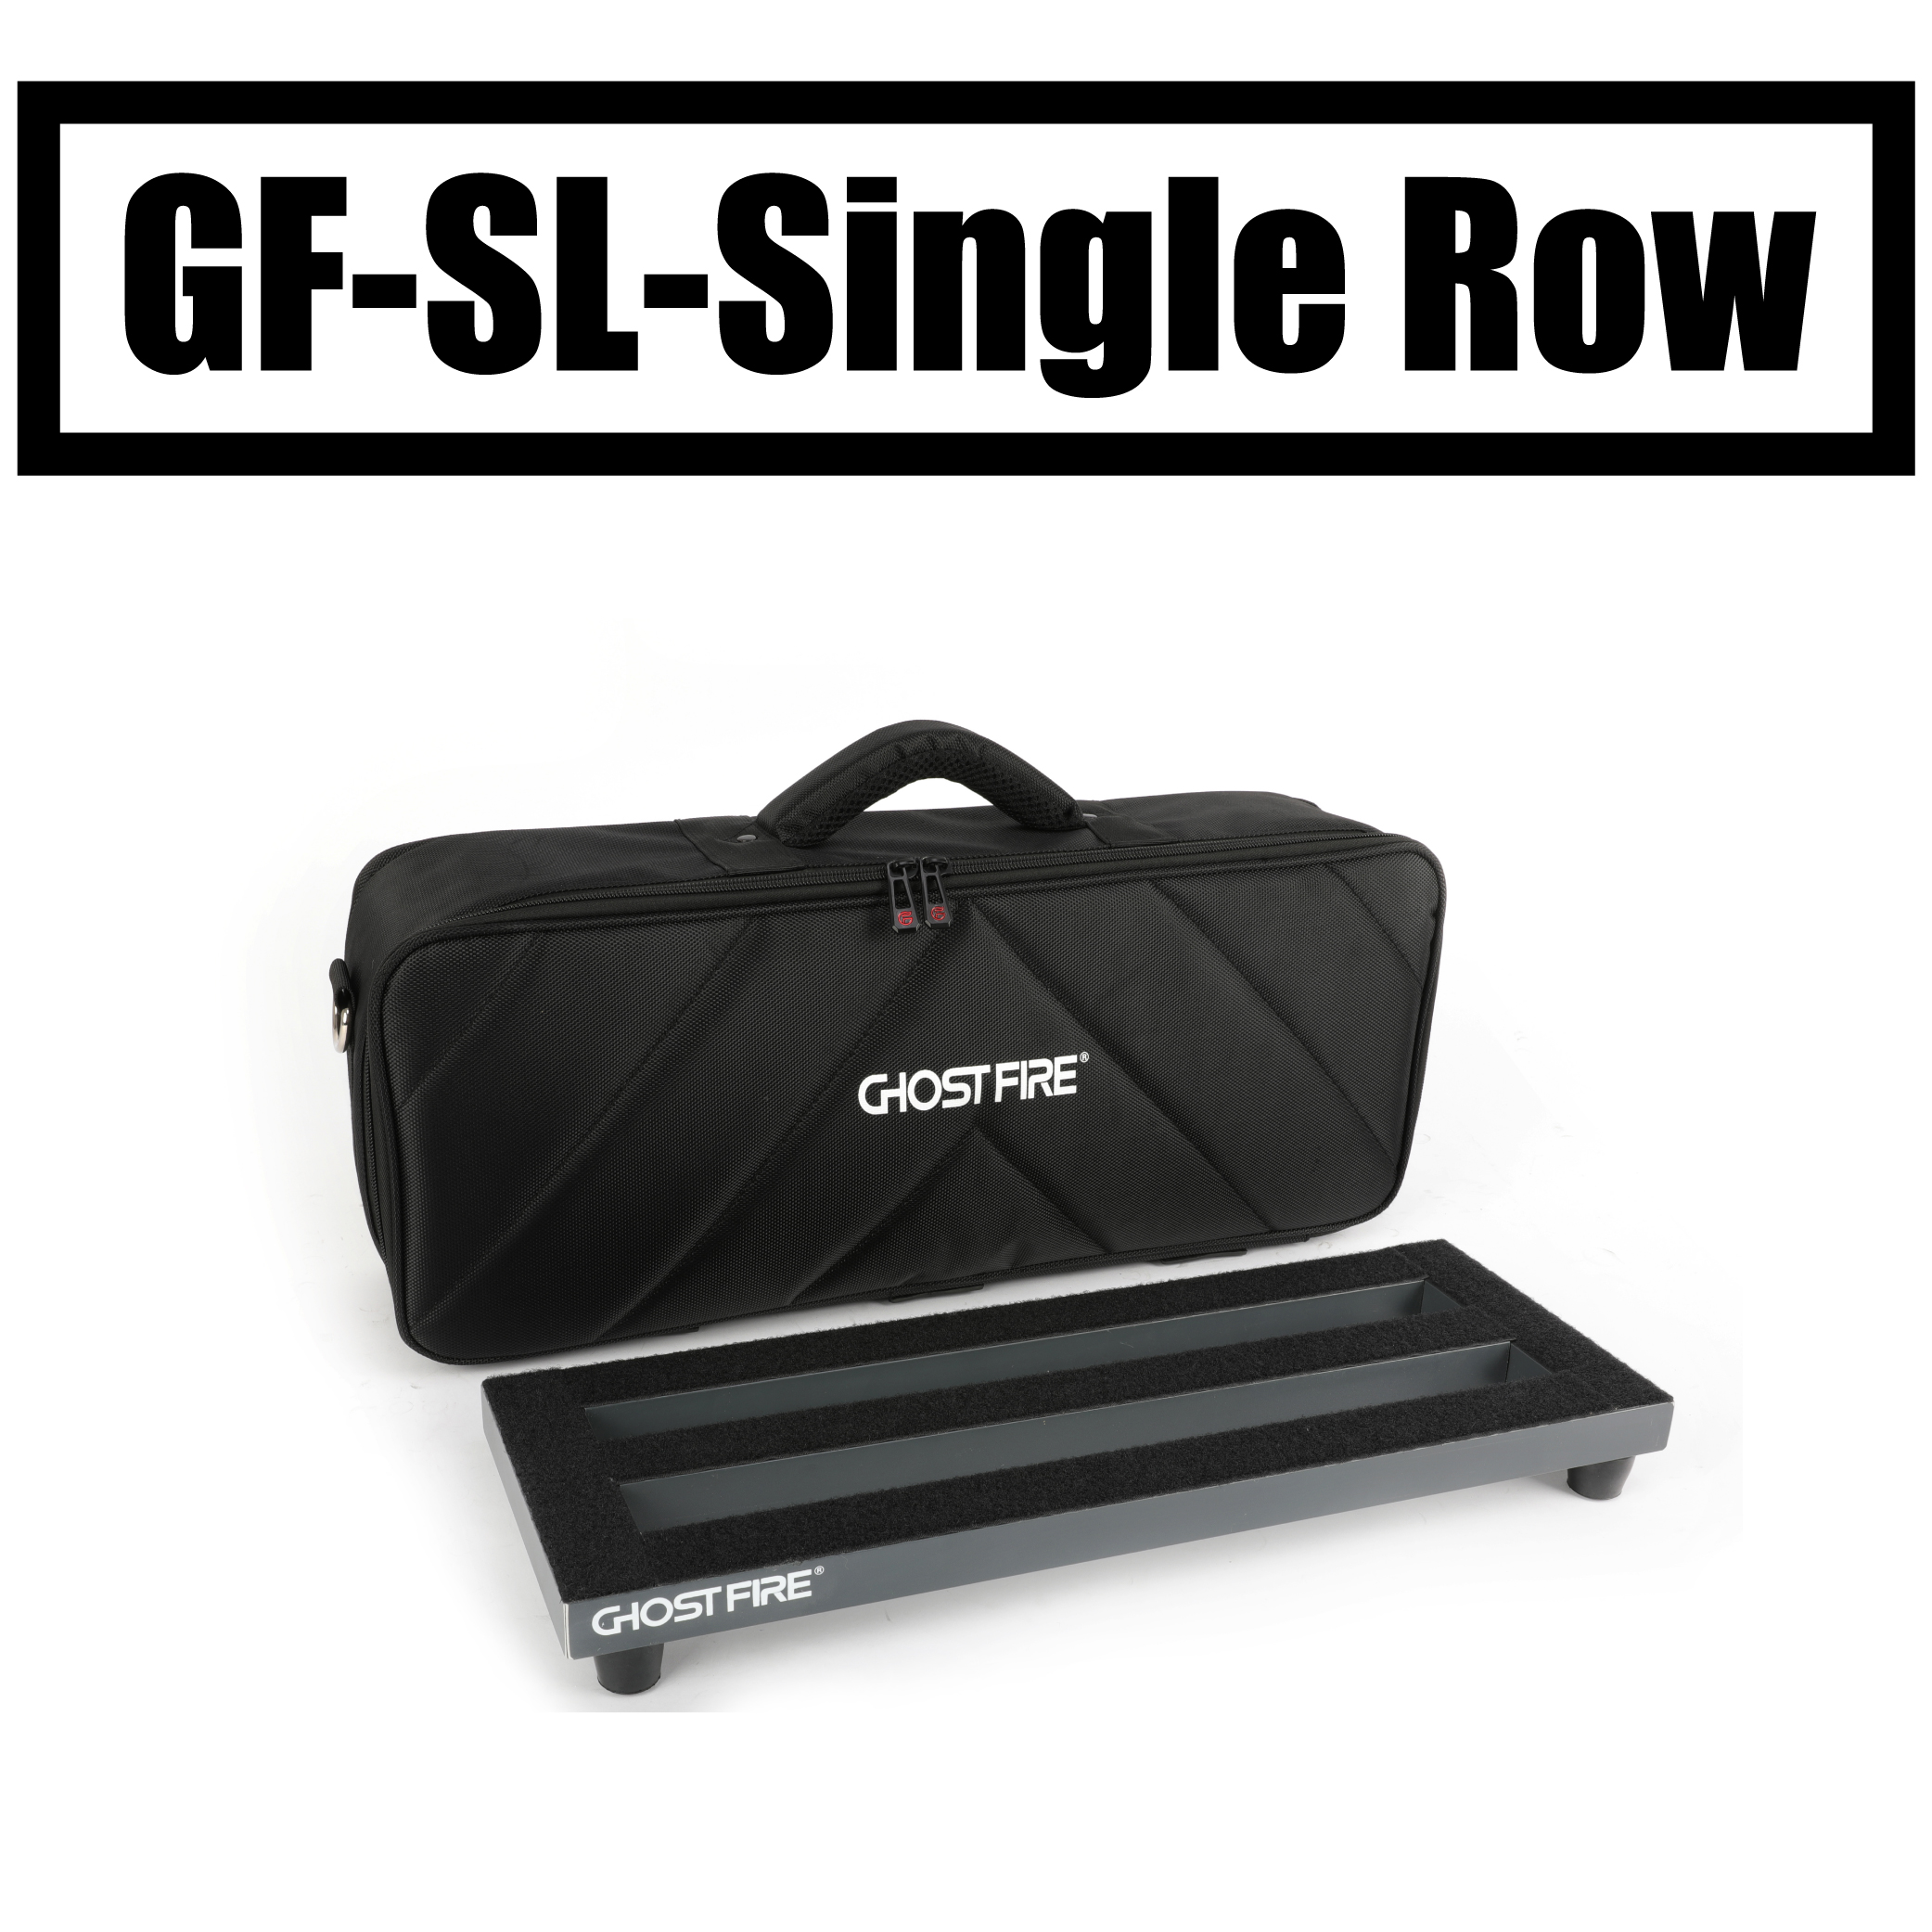 GF-SL-Single Row